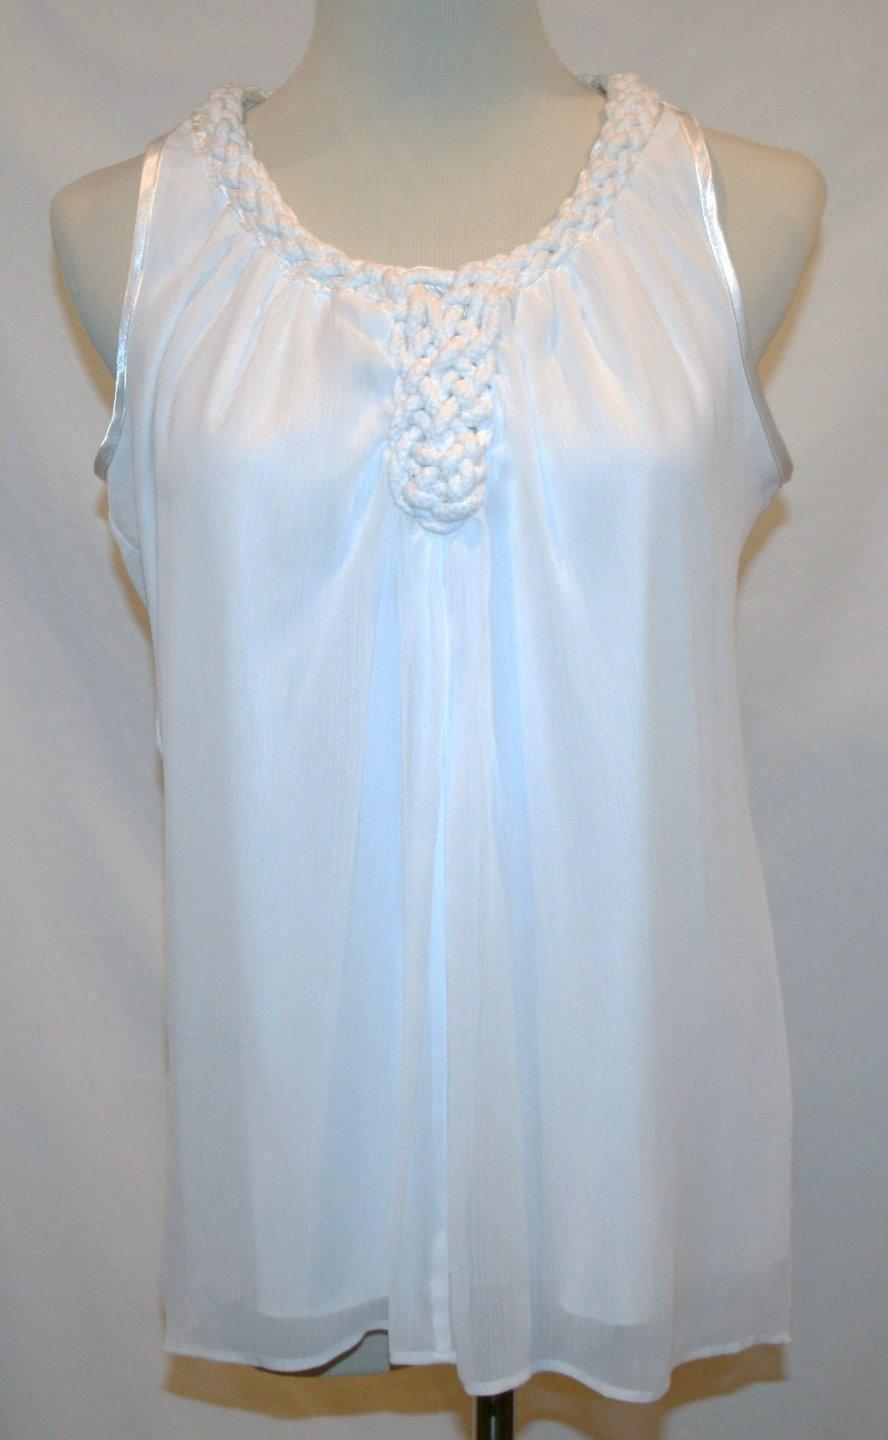 Sioni White Sleeveless Rope Neck Lined Blouse  Small   #1370